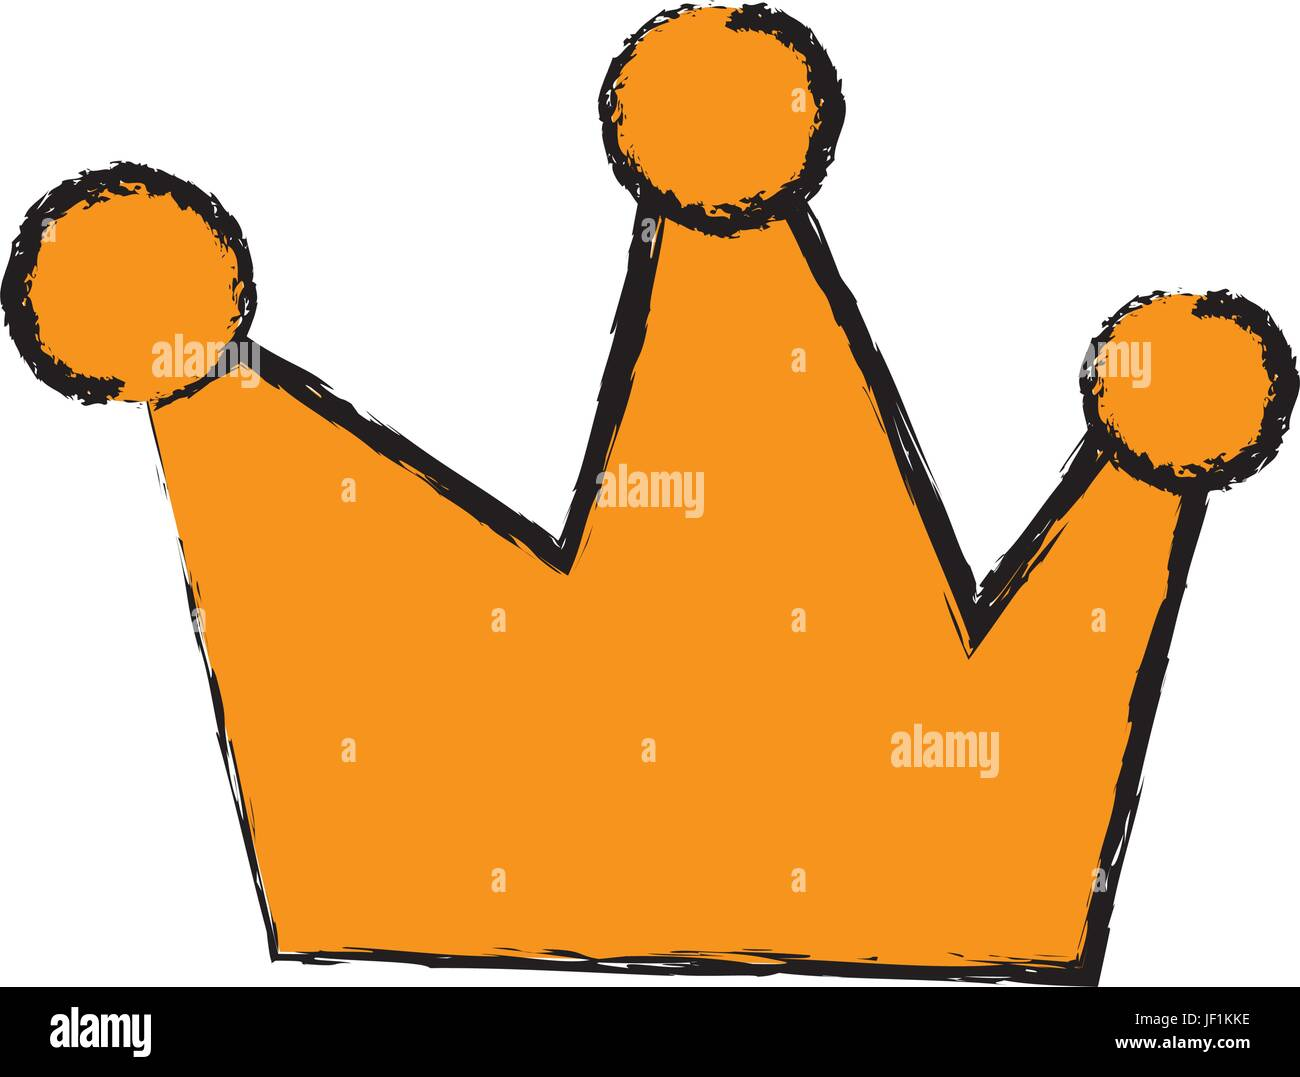 Cartoon Crown Royal Fairy Tale Emblem Stock Vector Image Art Alamy There are 4218 cartoon crown for sale on etsy, and they cost $8.05 on average. https www alamy com stock photo cartoon crown royal fairy tale emblem 146940178 html